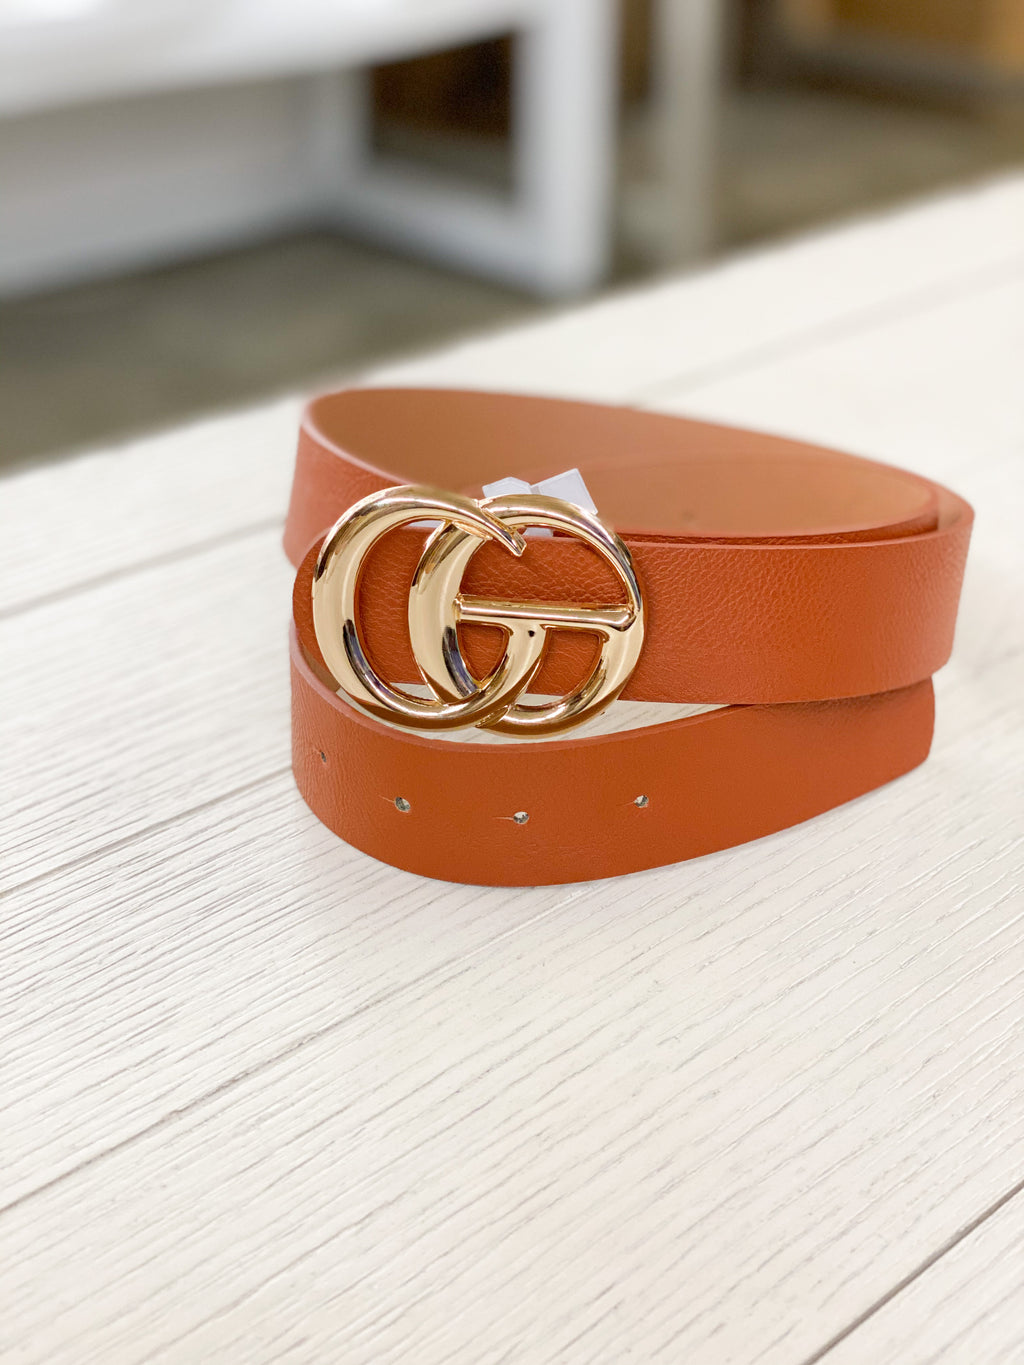 The Gucci Inspired Belt Brown